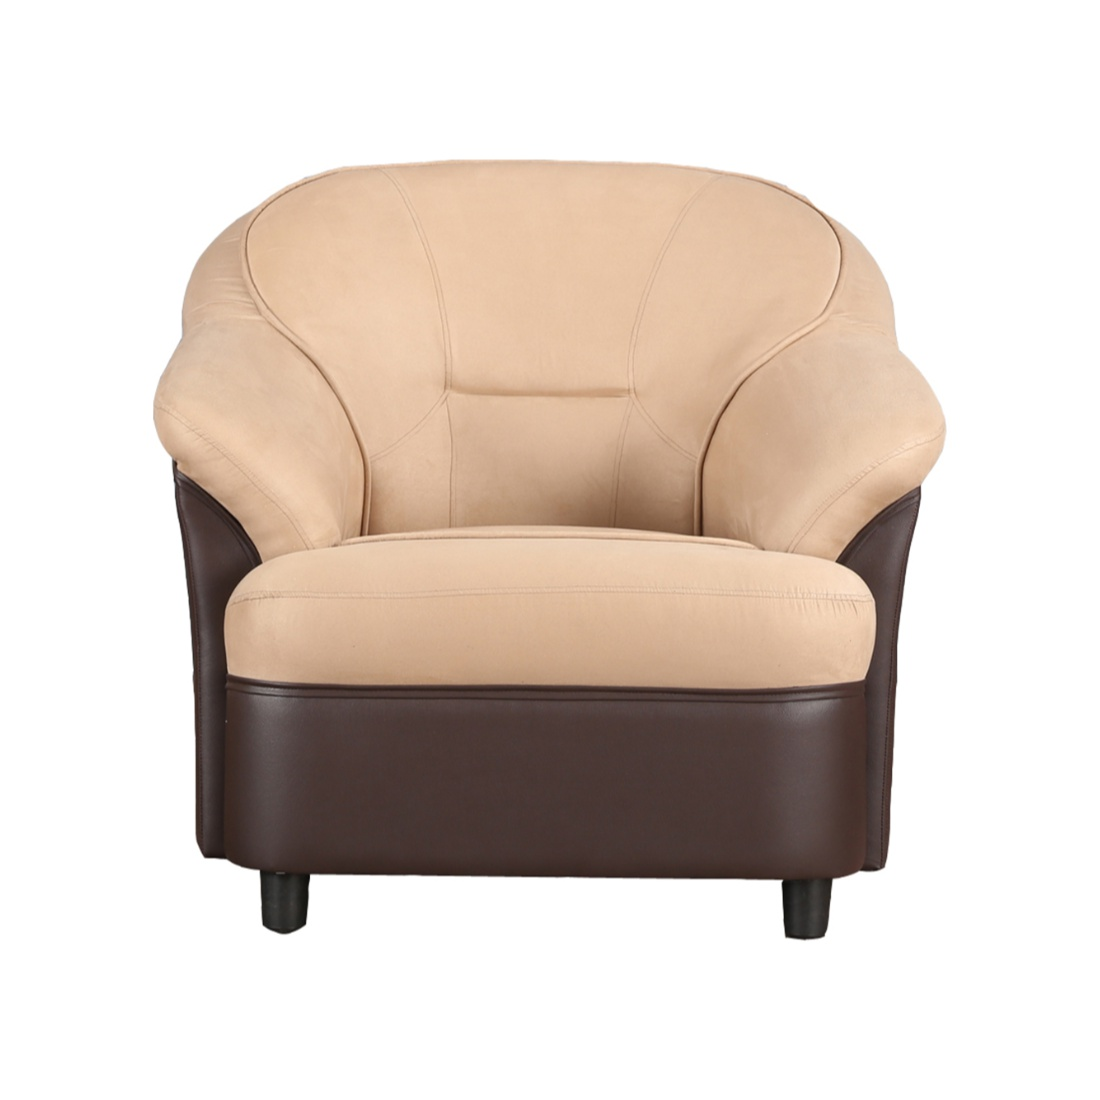 Lamia Fabric Single Seater sofa in Brown Colour by HomeTown